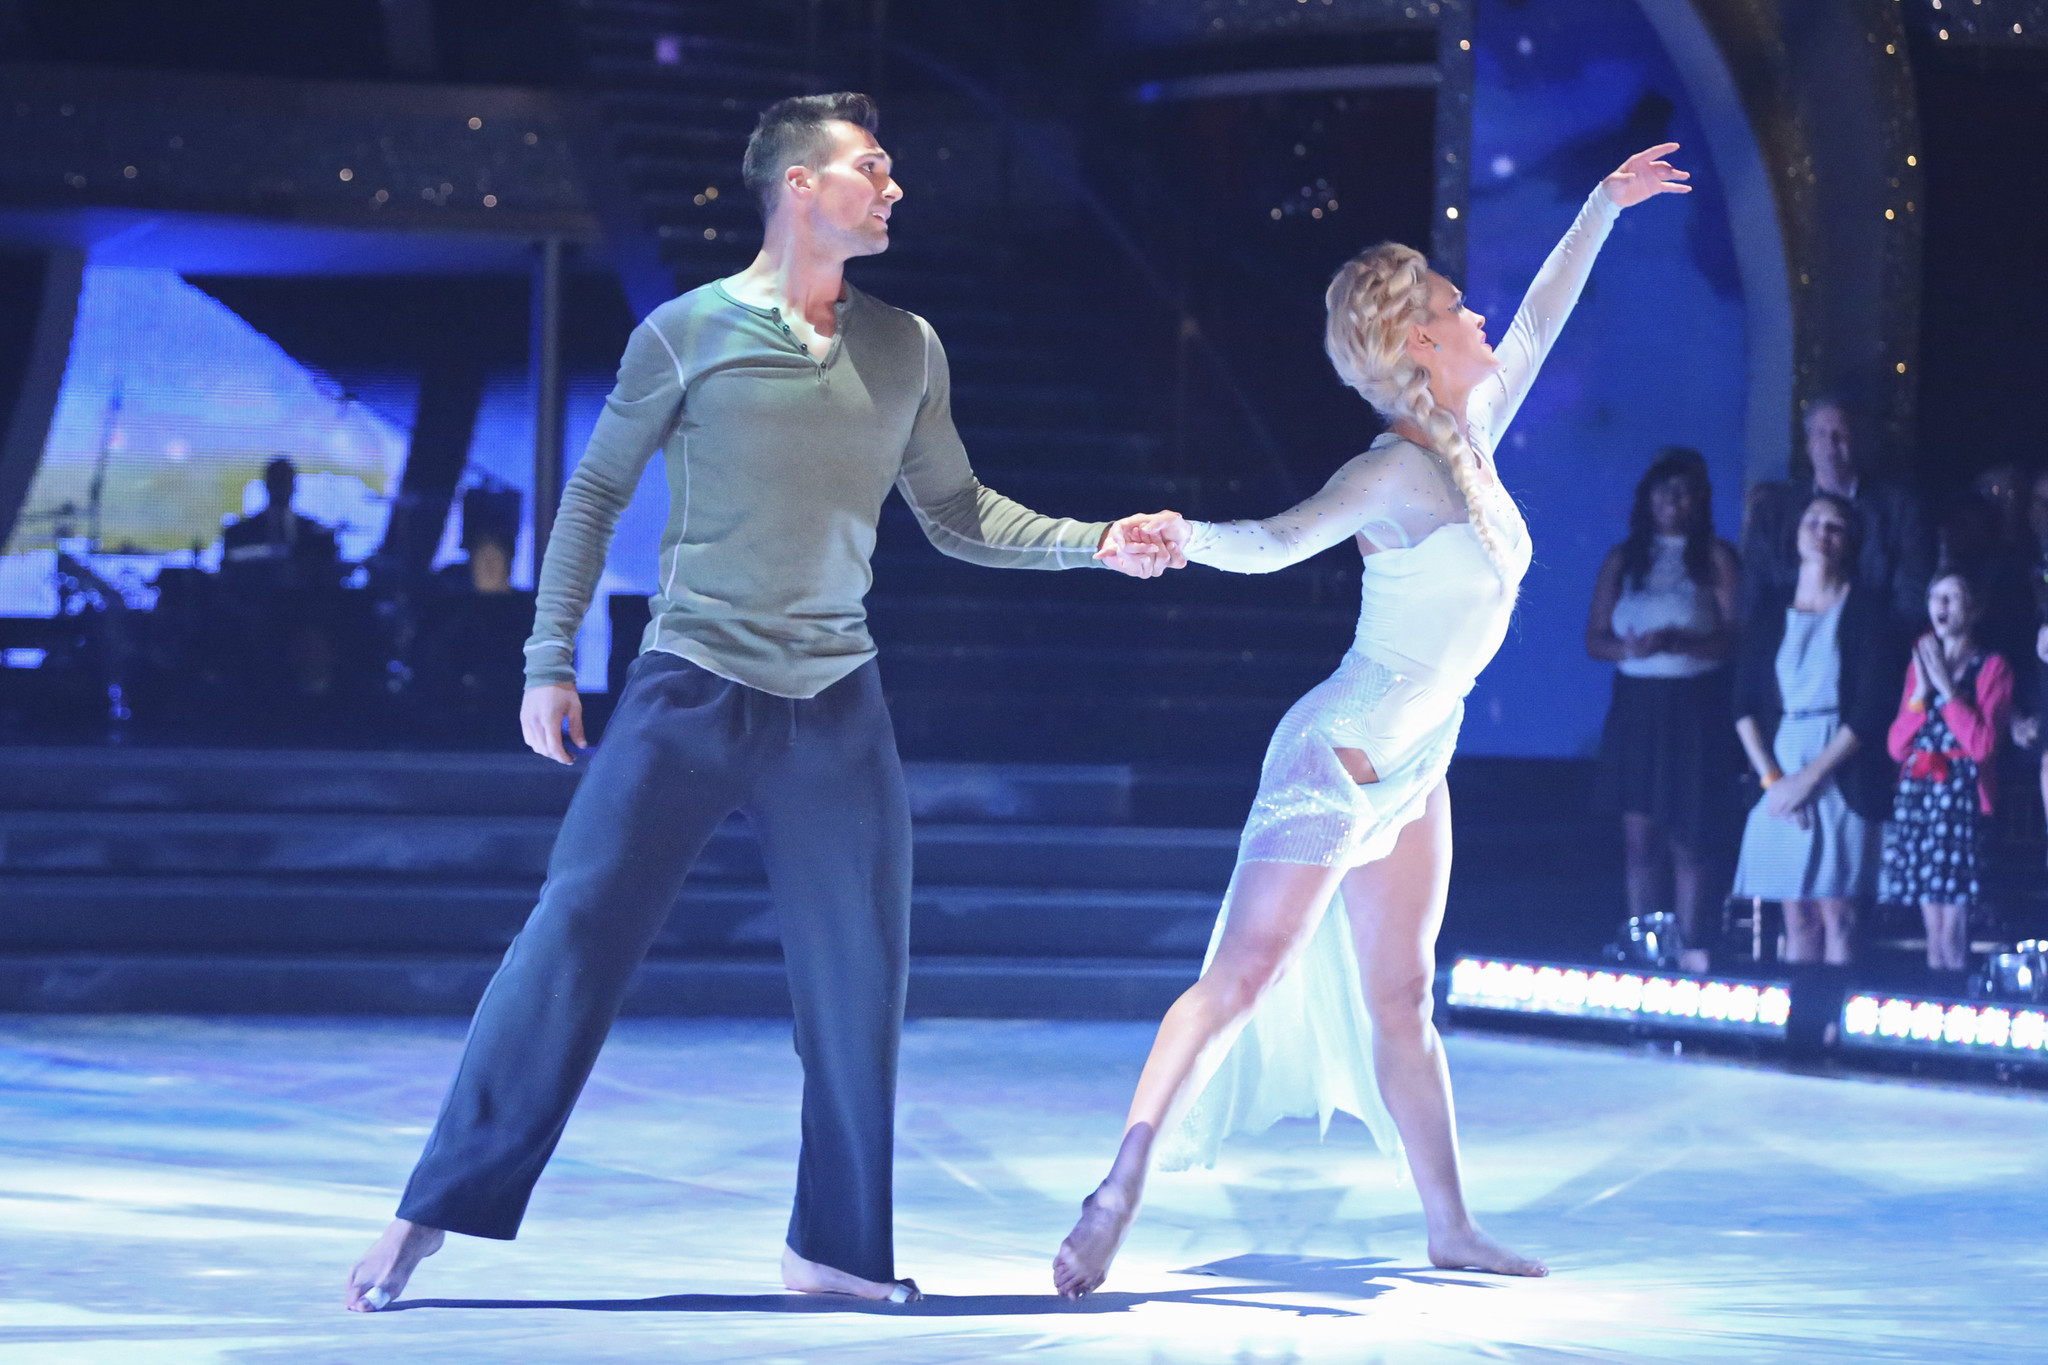 James maslow dancing with the stars frozen sweepstakes